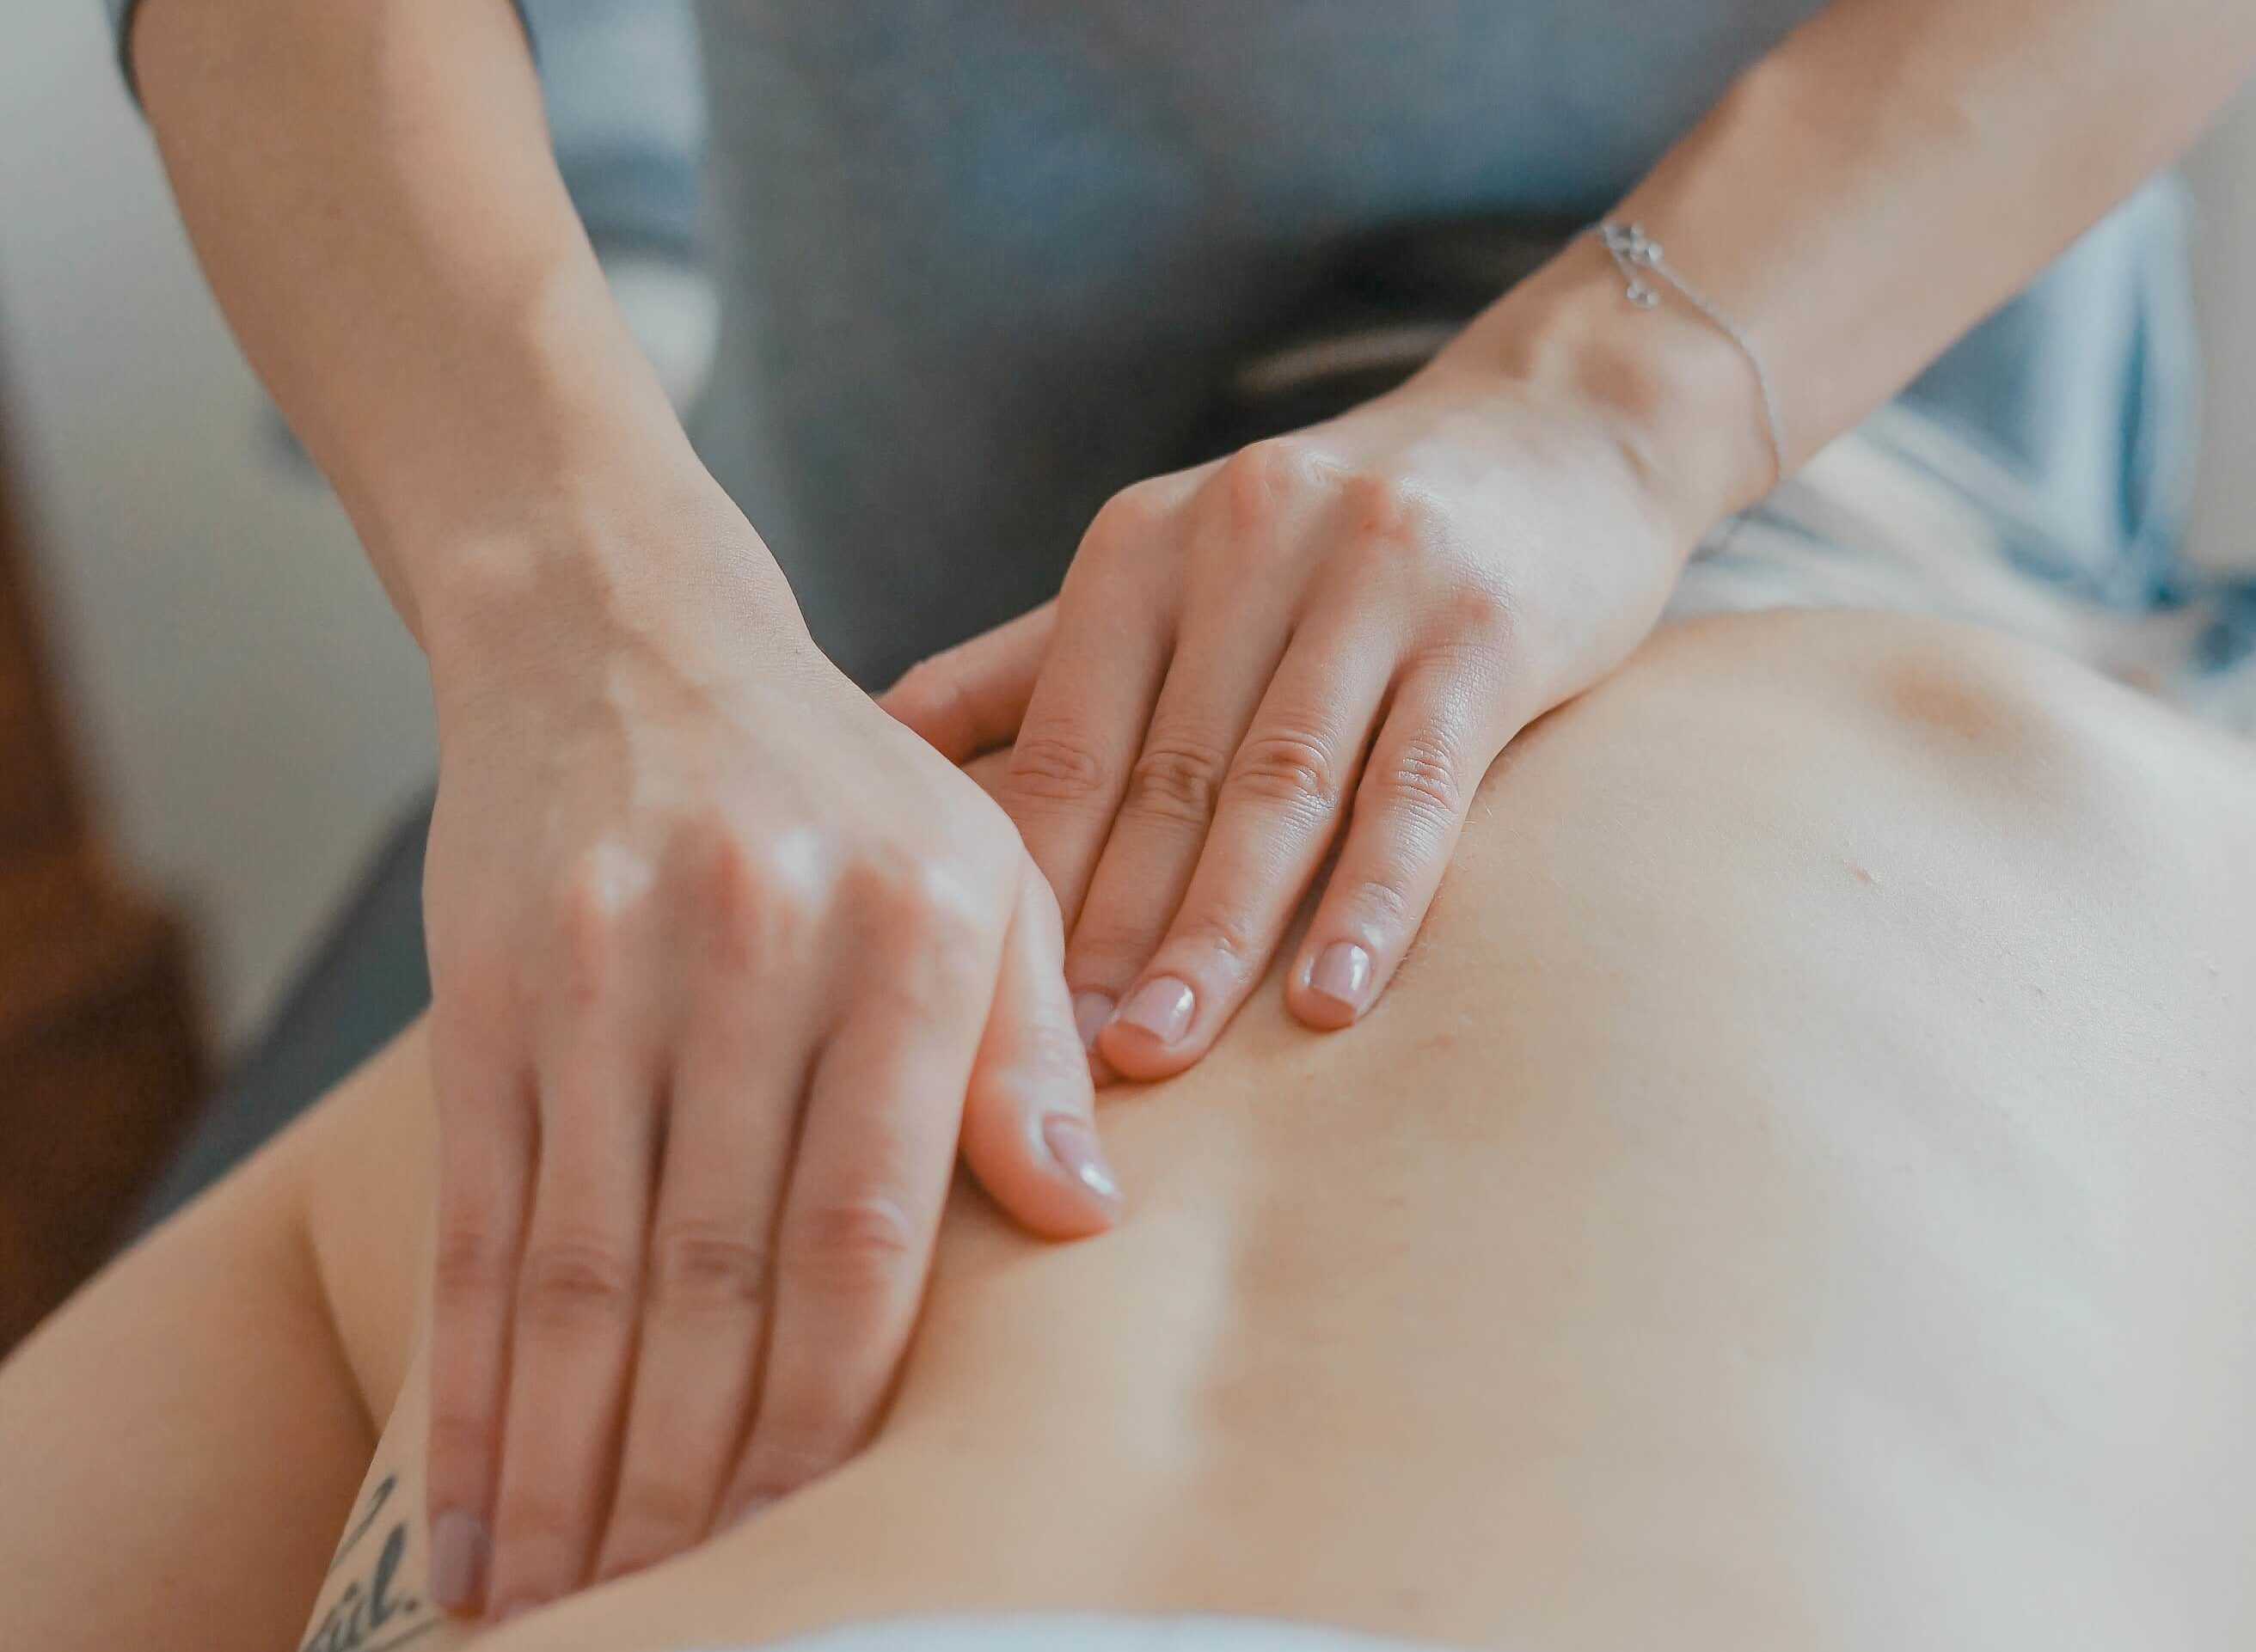 Deep Tissue Massage – Important Things You Should Know